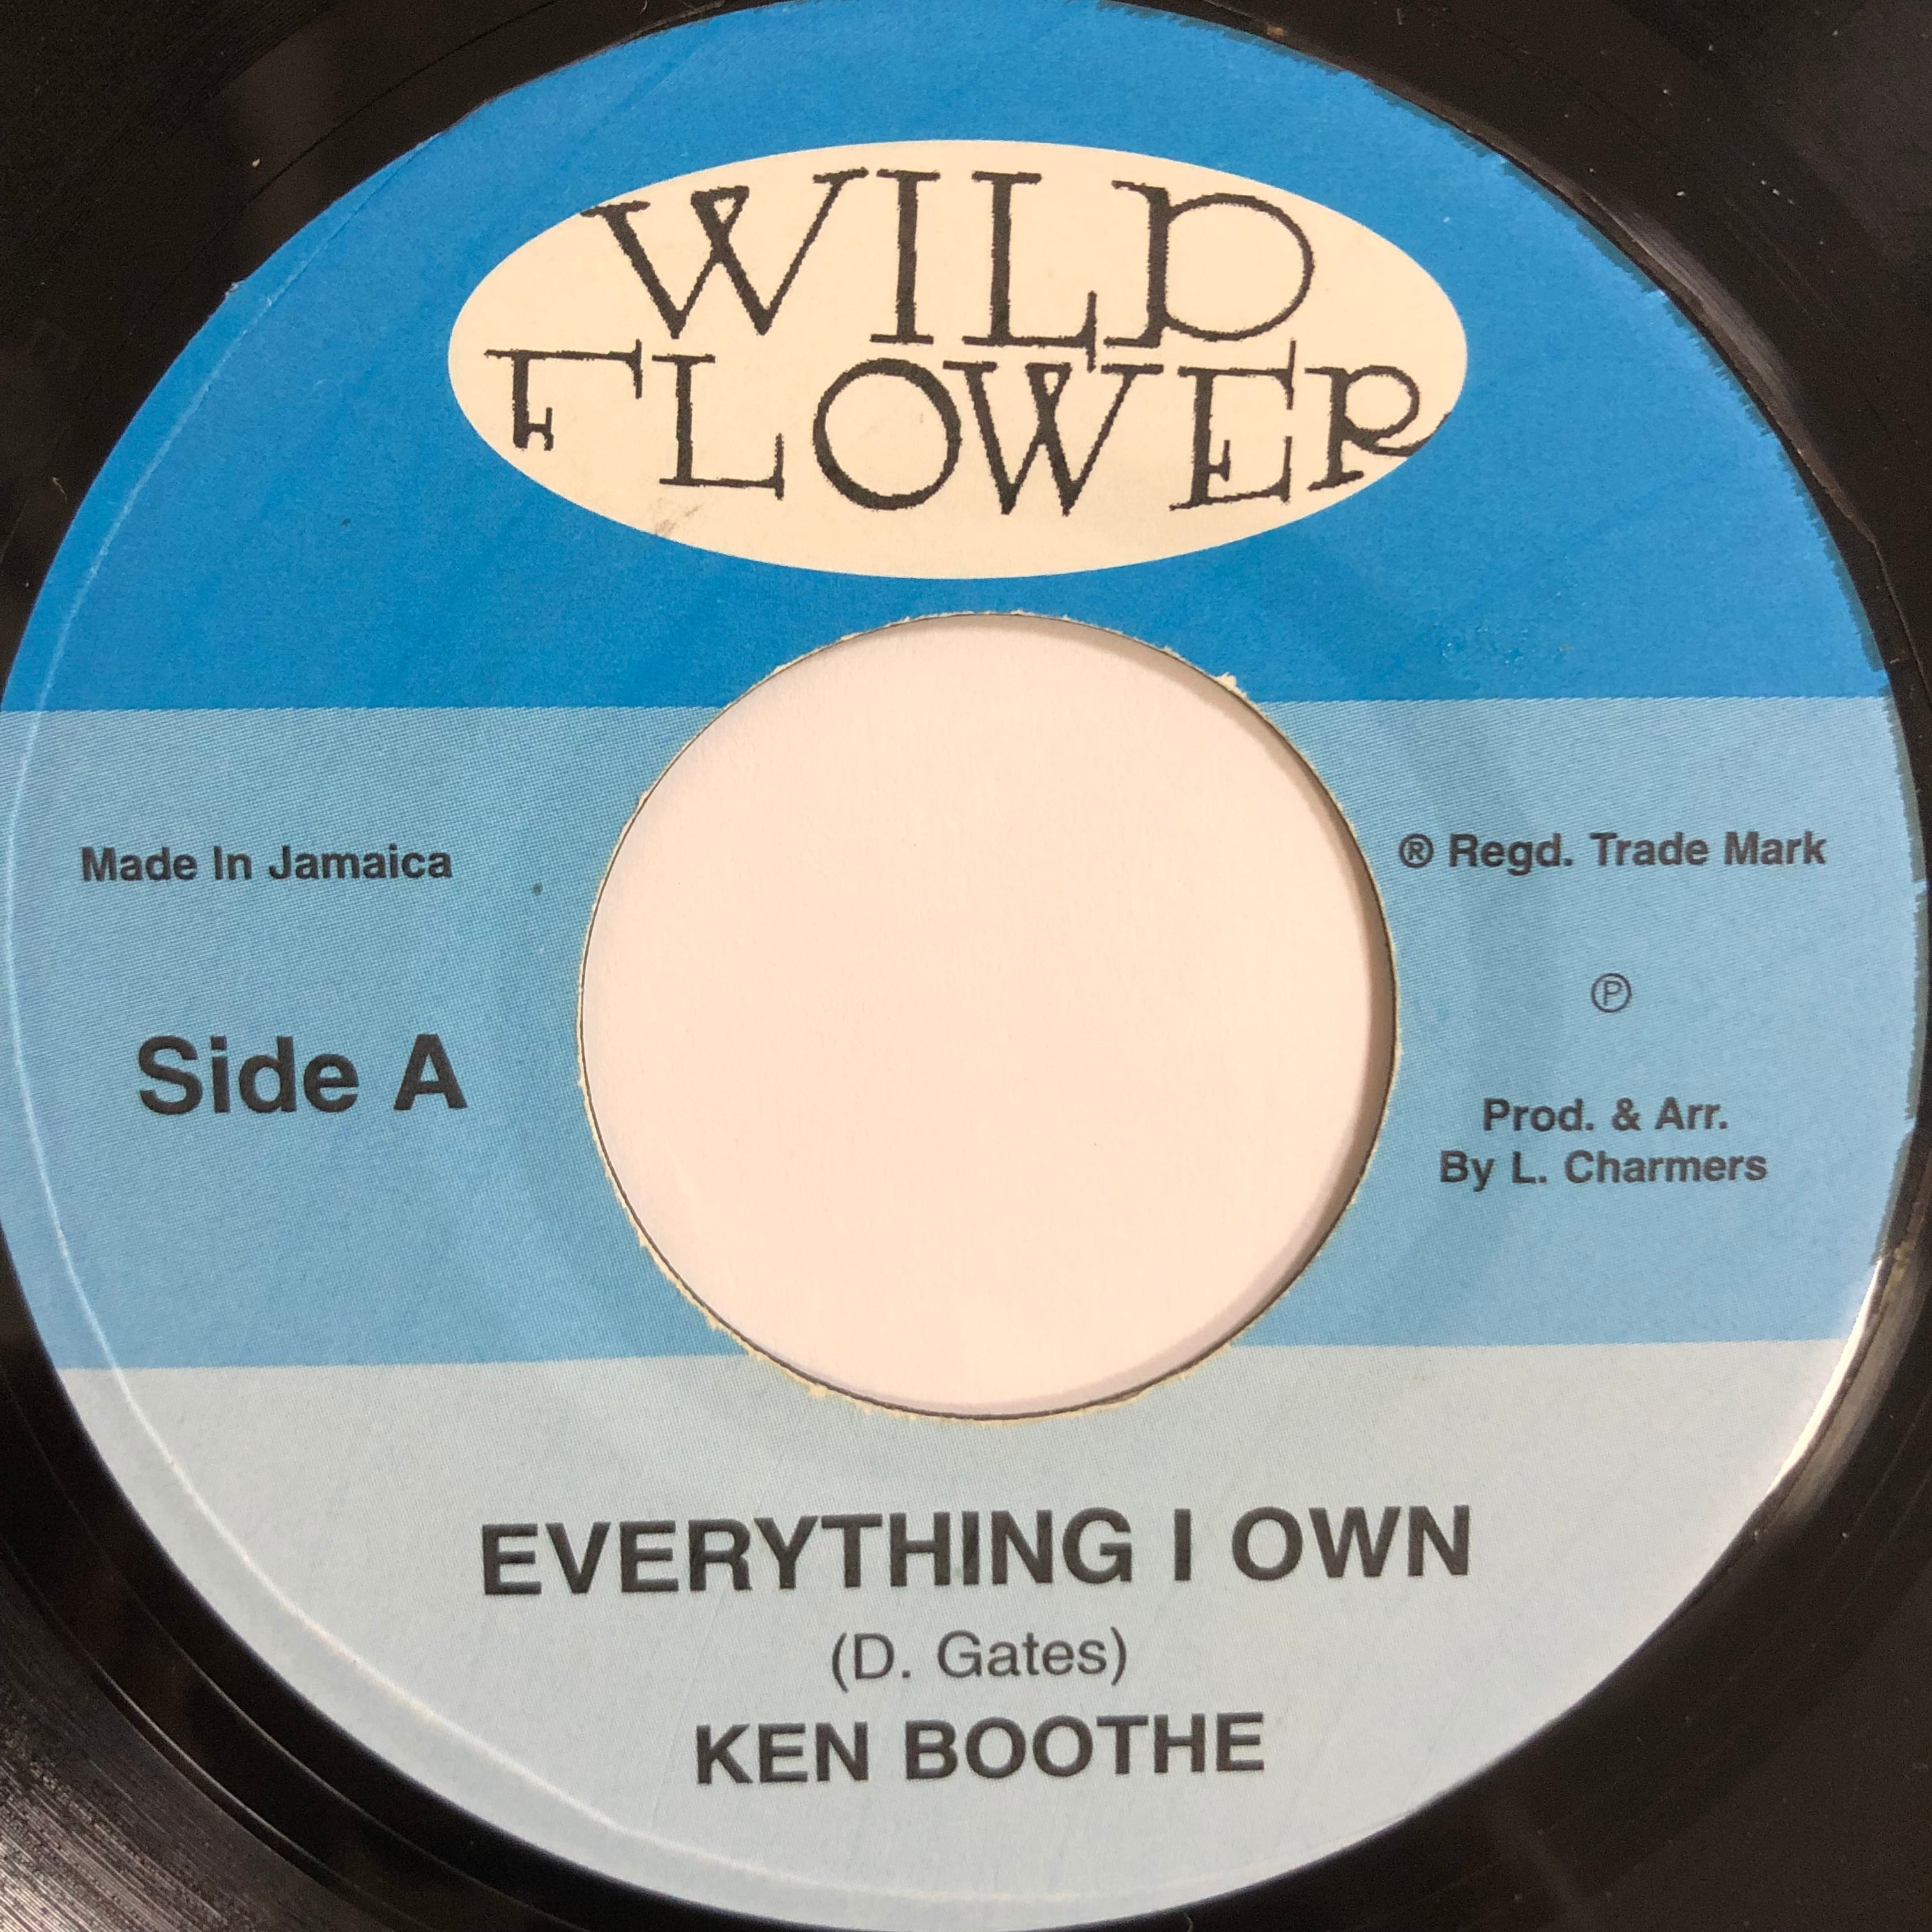 Ken Boothe(ケンブース) - Everything I Own【7-20198】